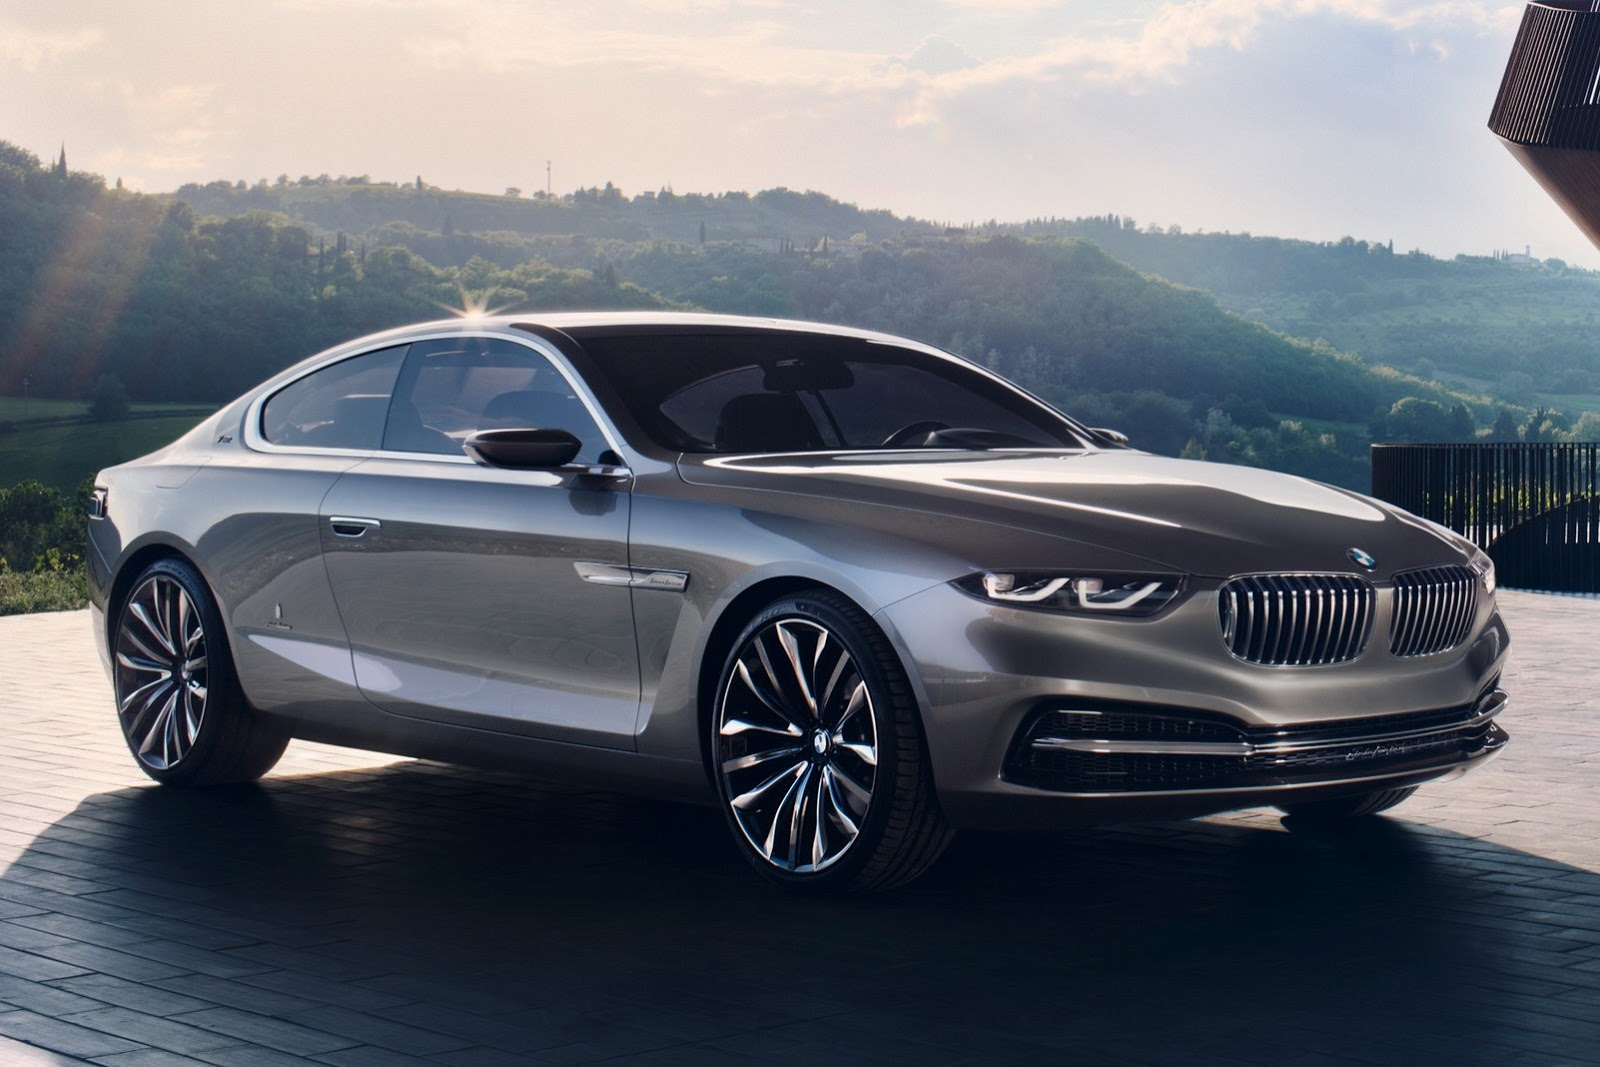 Rendering of what the 8 series could look like  Photo: carscoops